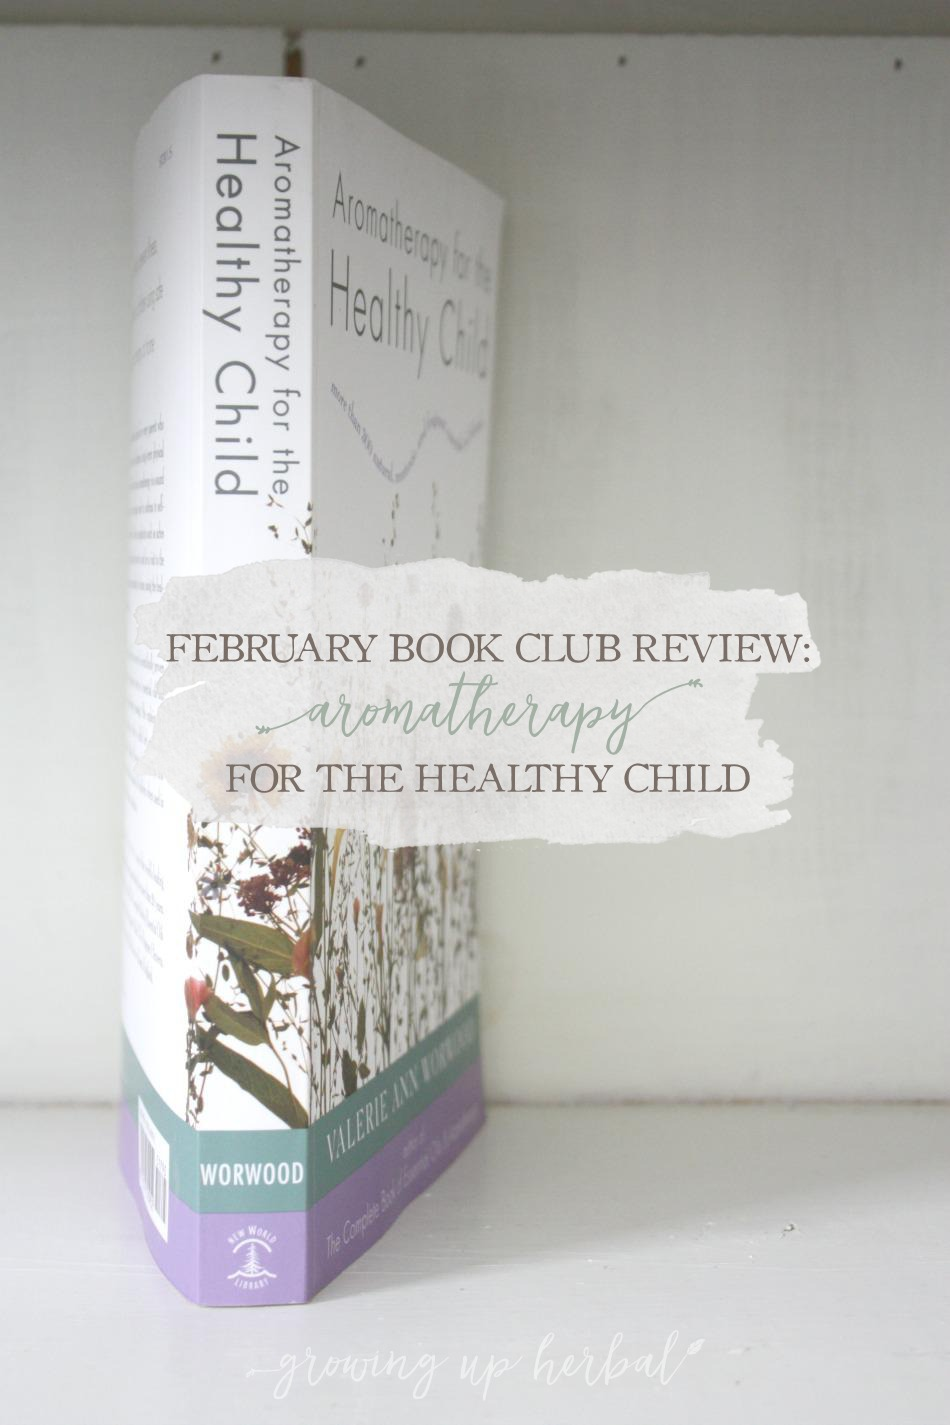 February Book Club Review: Aromatherapy for the Healthy Child | Growing Up Herbal | Interested in learning about using essential oils for children? Check out the review of this essential oil resource that's specifically for children.